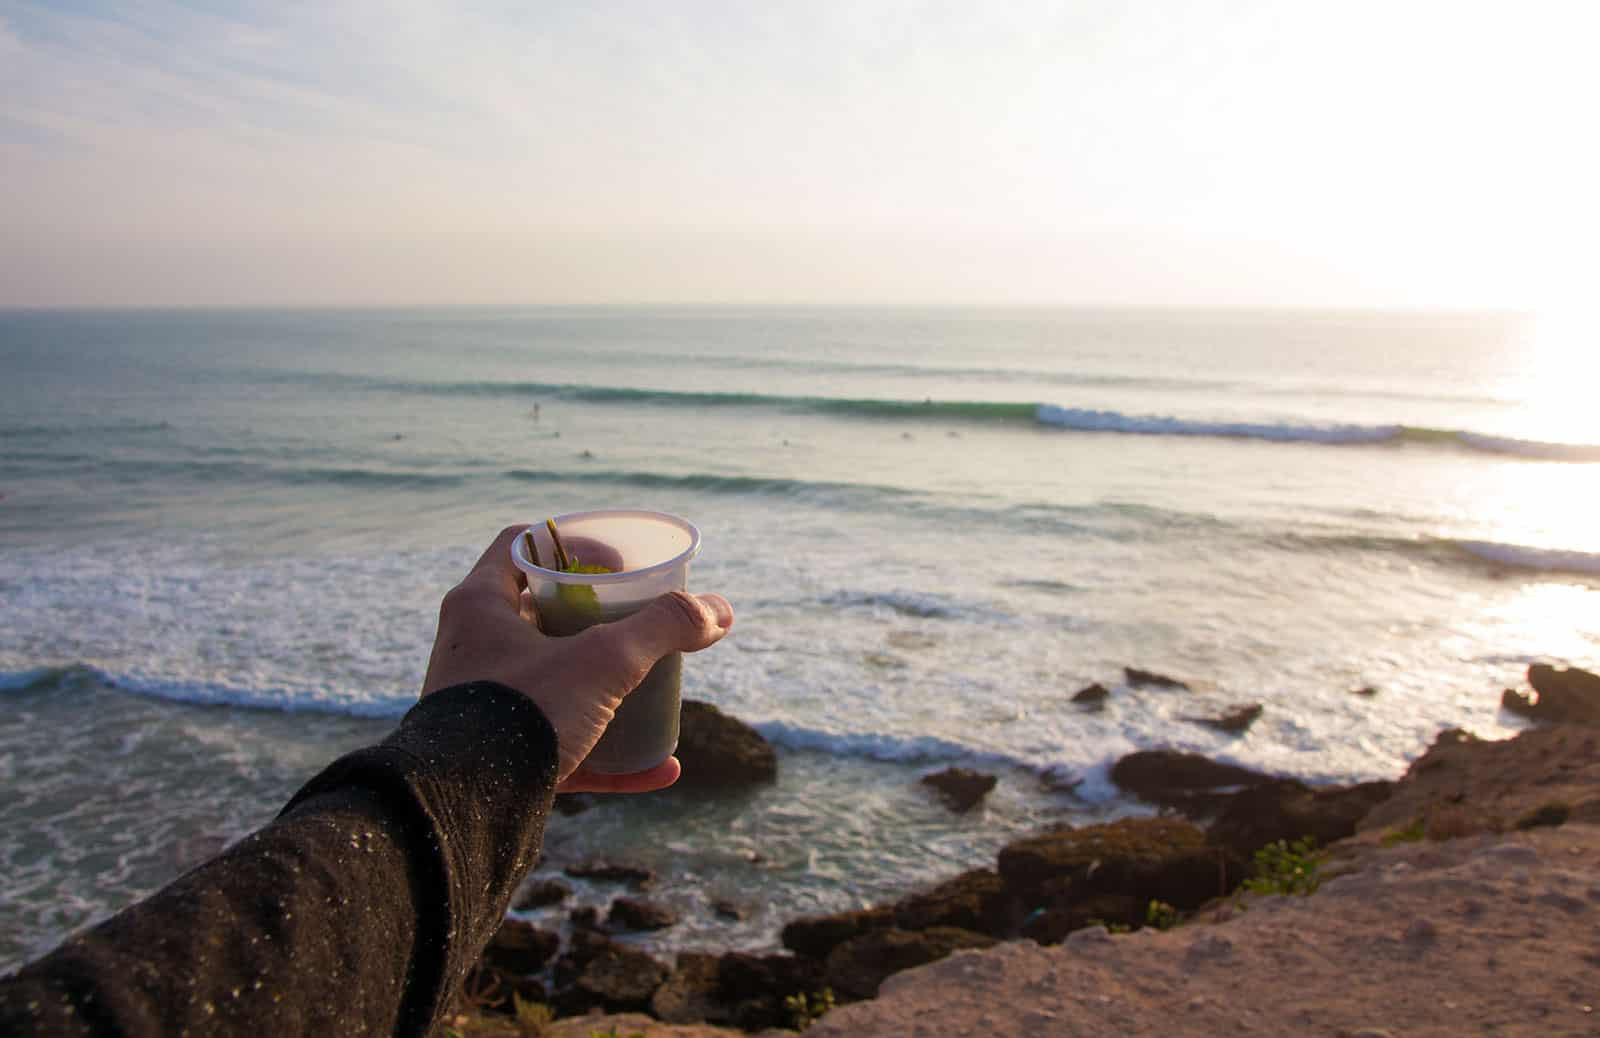 Sugar saturated mint tea is the post surf session beer of Morocco. Cheers Tamraght.